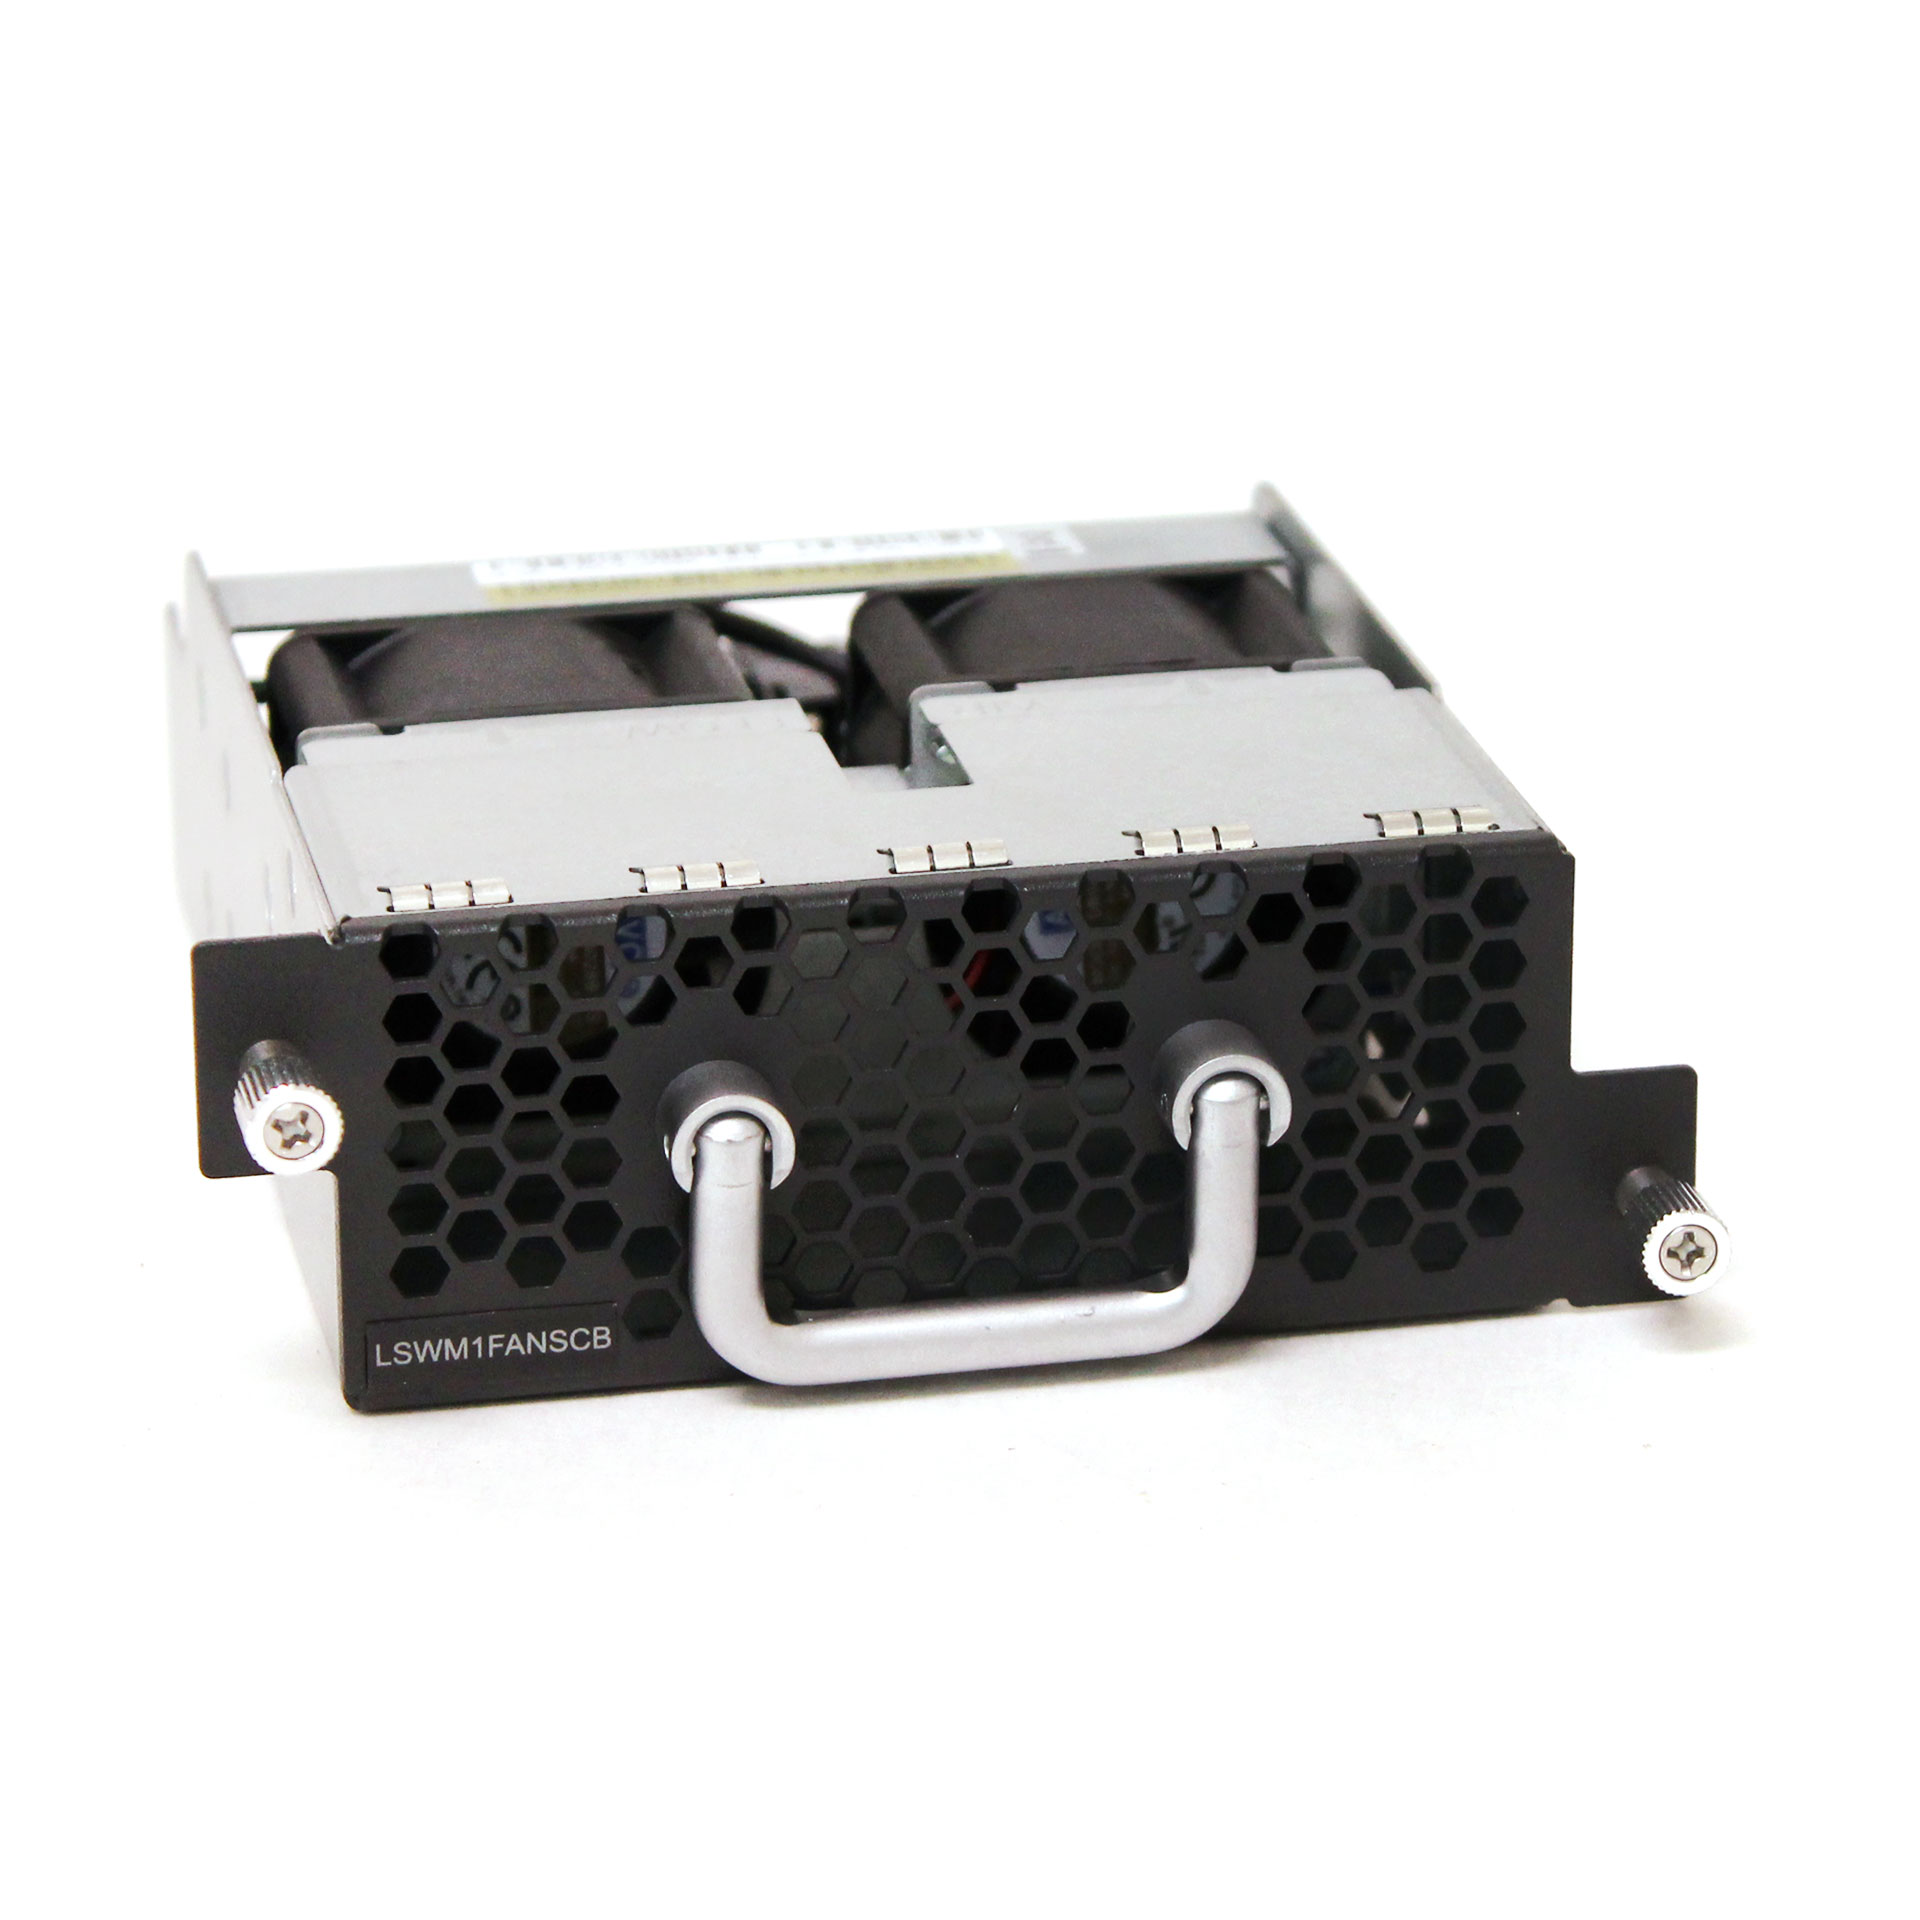 HP A58x0AF Network Front to Back Airflow Fan Tray JC683A